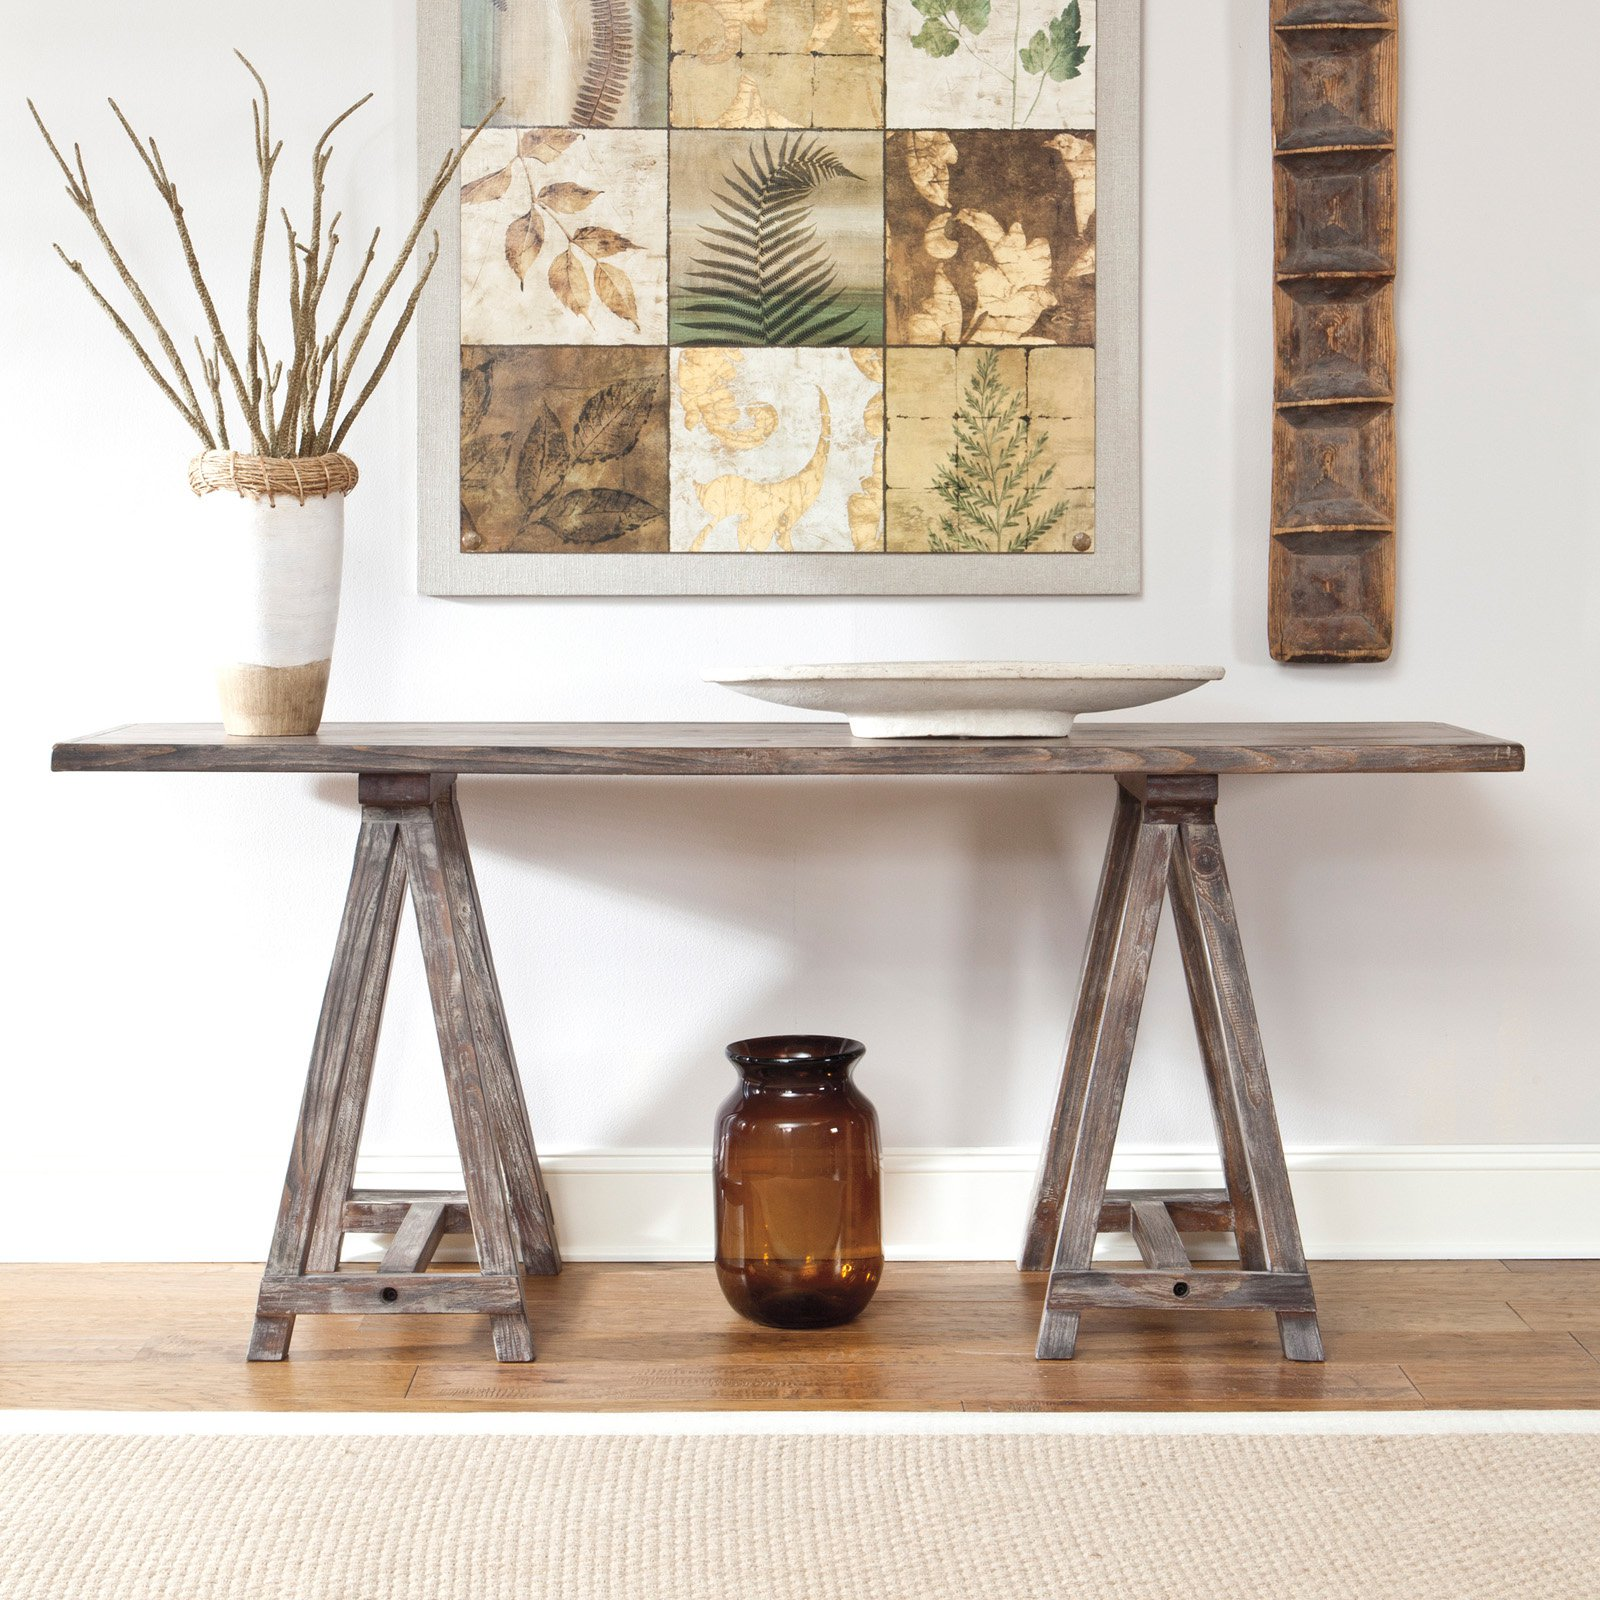 Superbe Signature Design By Ashley Rustic Accents Rectangular Brown Console Table    Walmart.com